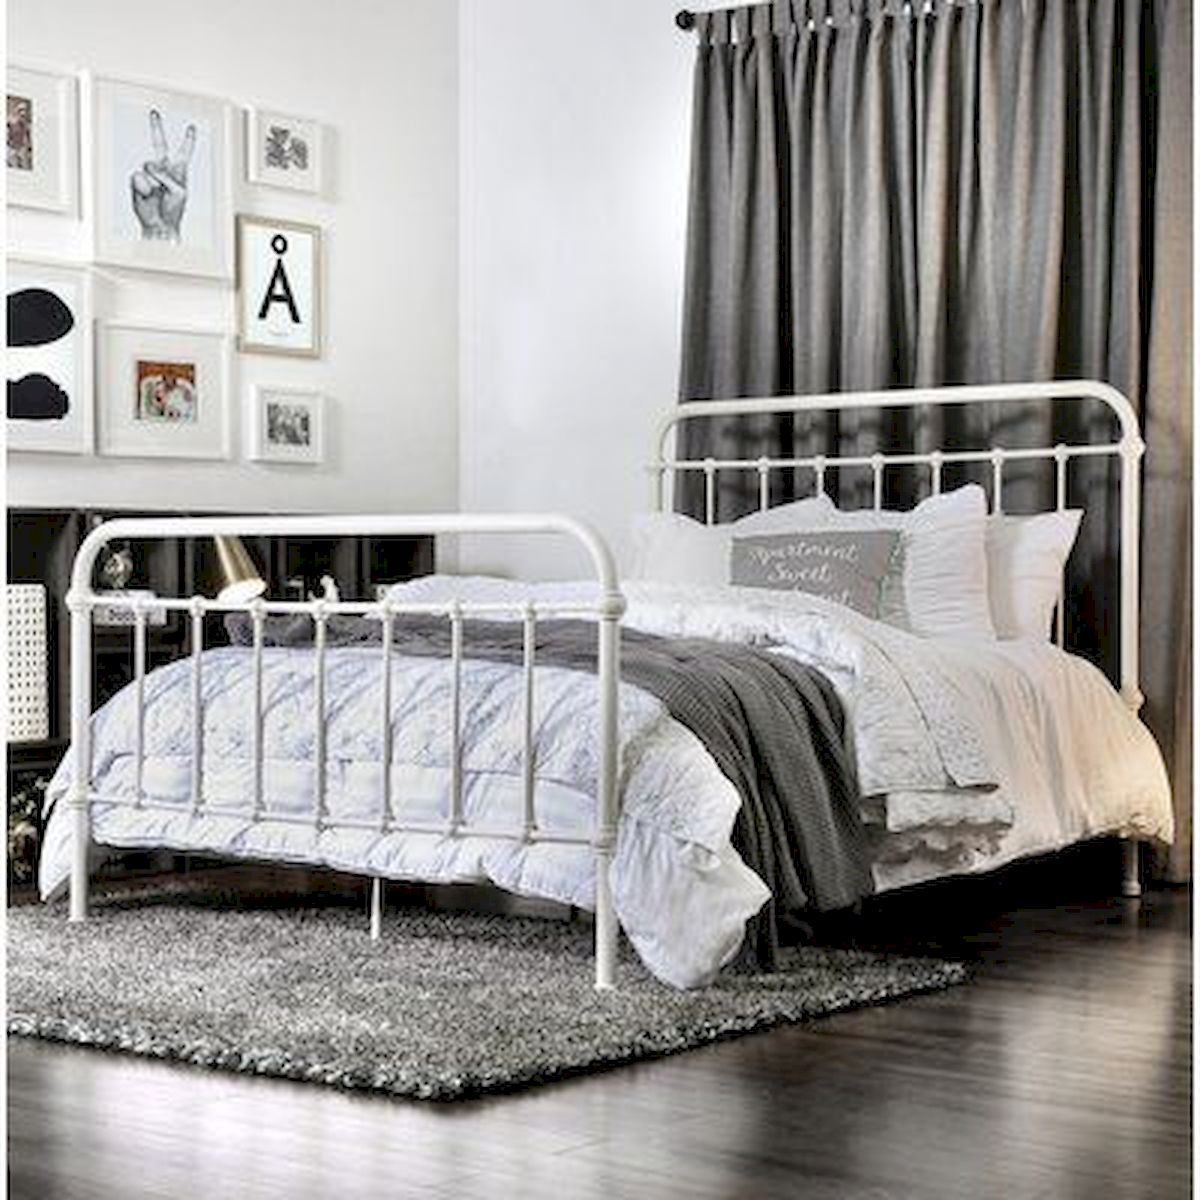 69 Best Farmhouse Bedding Decor Ideas And Remodel (53)